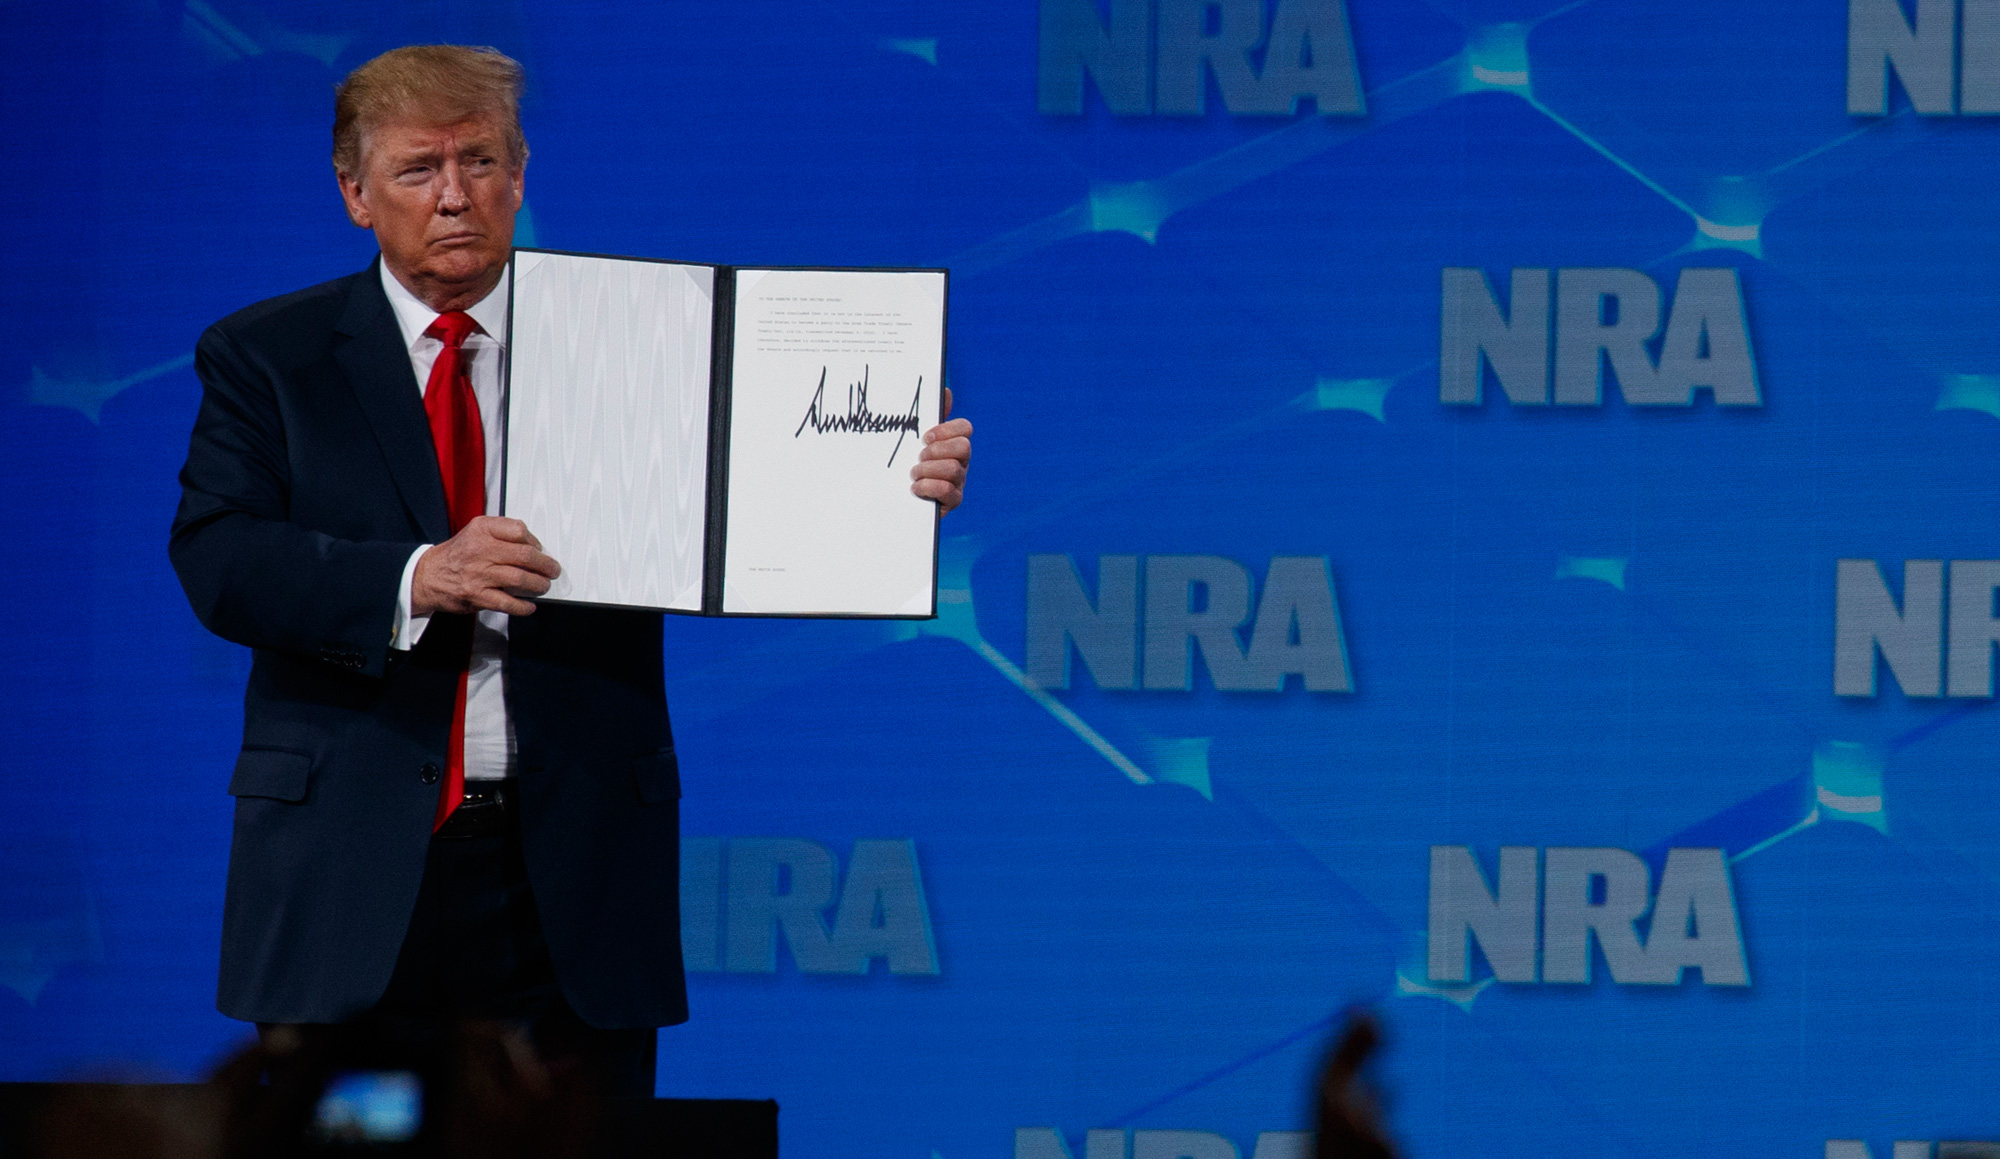 President Donald Trump holds up a letter to the Senate about the UN Arms Trade Treaty as he speaks to the annual meeting of the National Rifle Association on Friday, April 26, 2019, in Indianapolis.